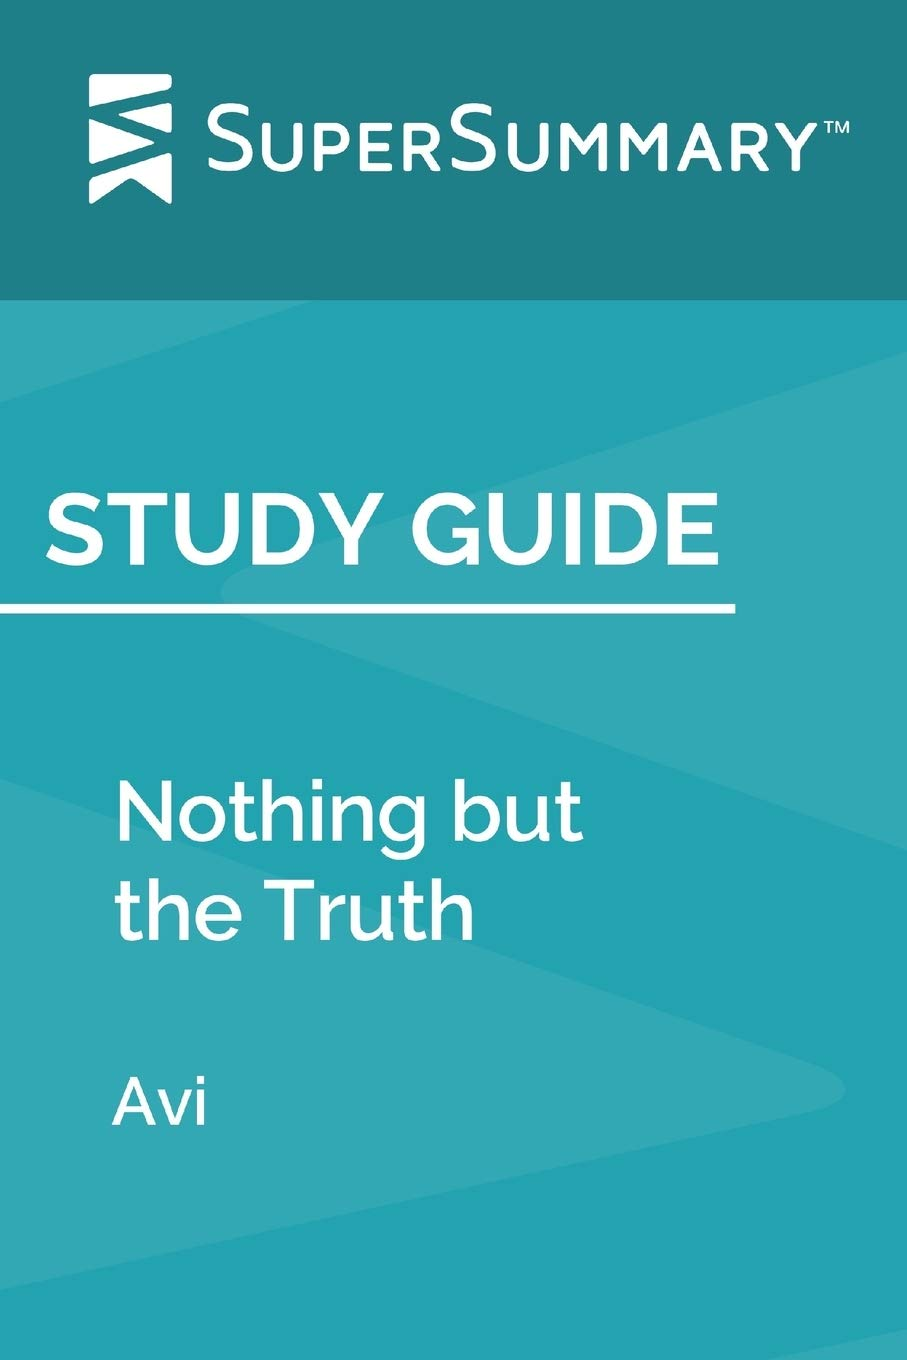 Study Guide: Nothing but the Truth by Avi